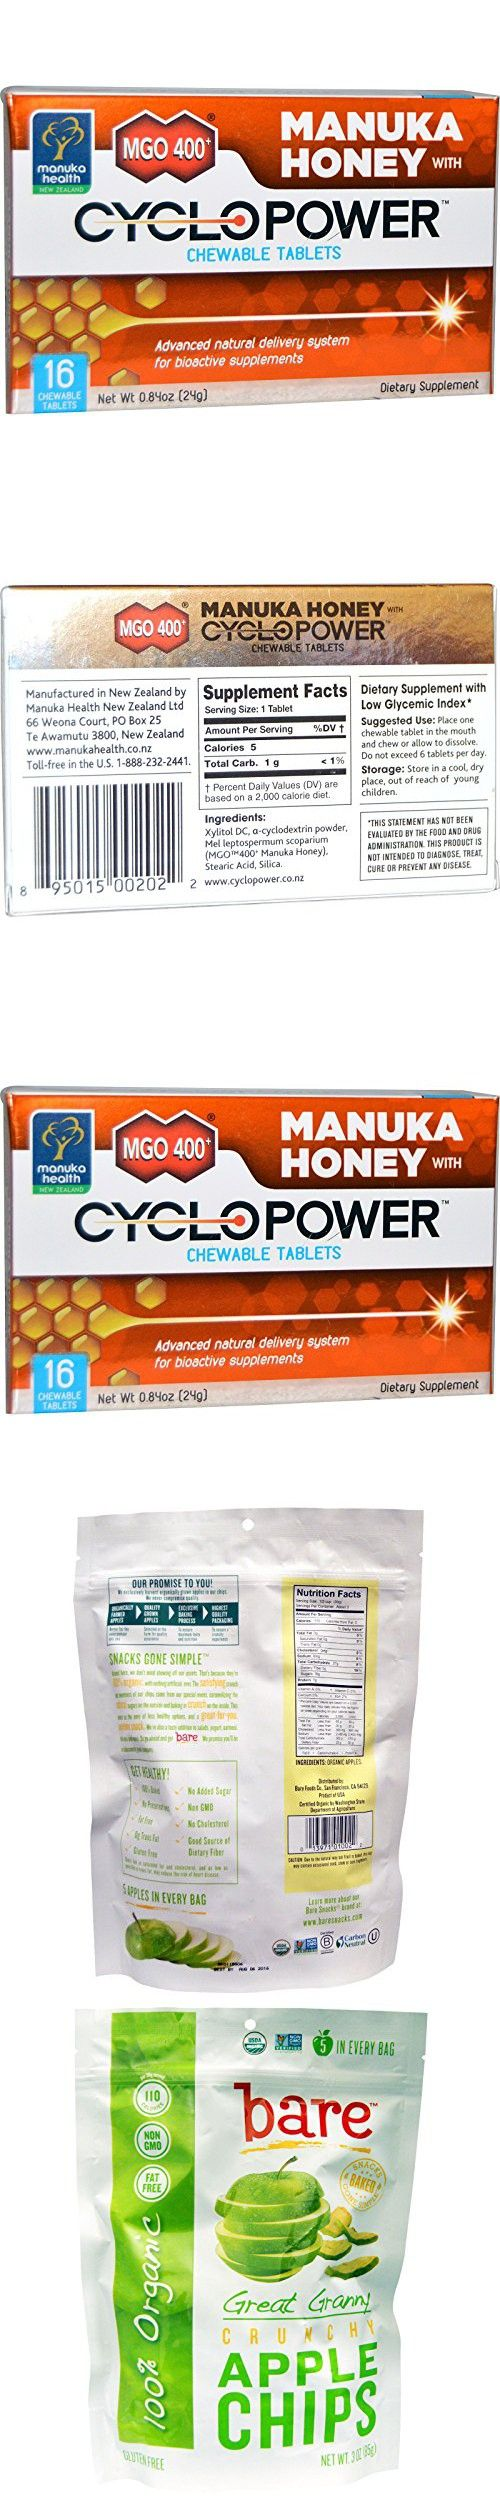 Best Manuka Health, MGO 400+, Manuka Honey with CycloPower, 16 Chewable Tablets, Bare Fruit, Great Granny Crunchy Apple Chips, 3 oz (85 g)